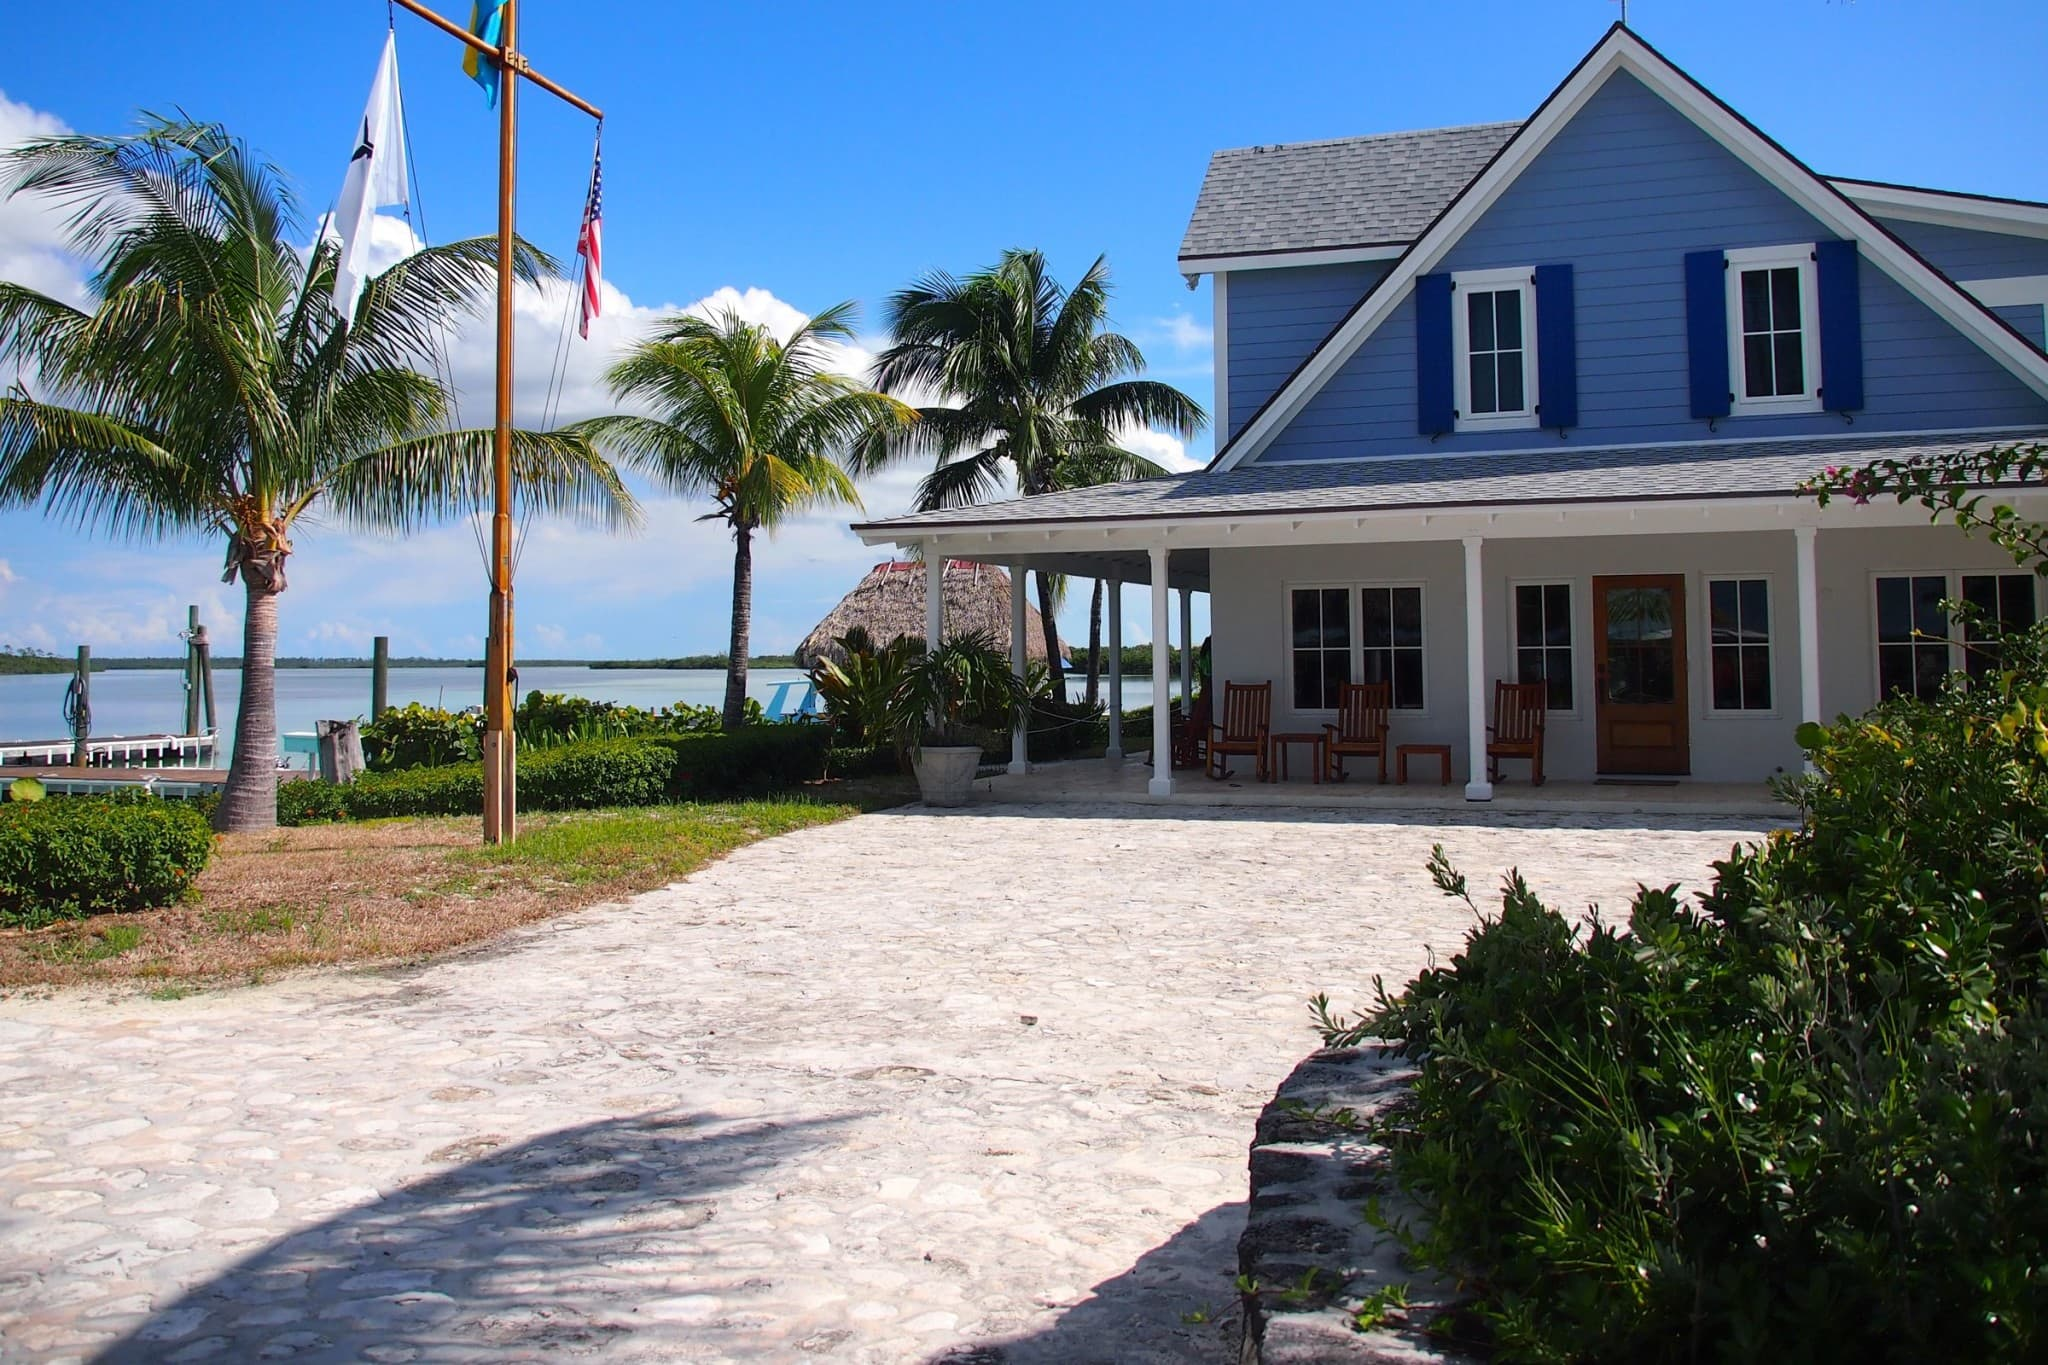 How To Pick The Right Room for You at Deep Water Cay, The Bahamas